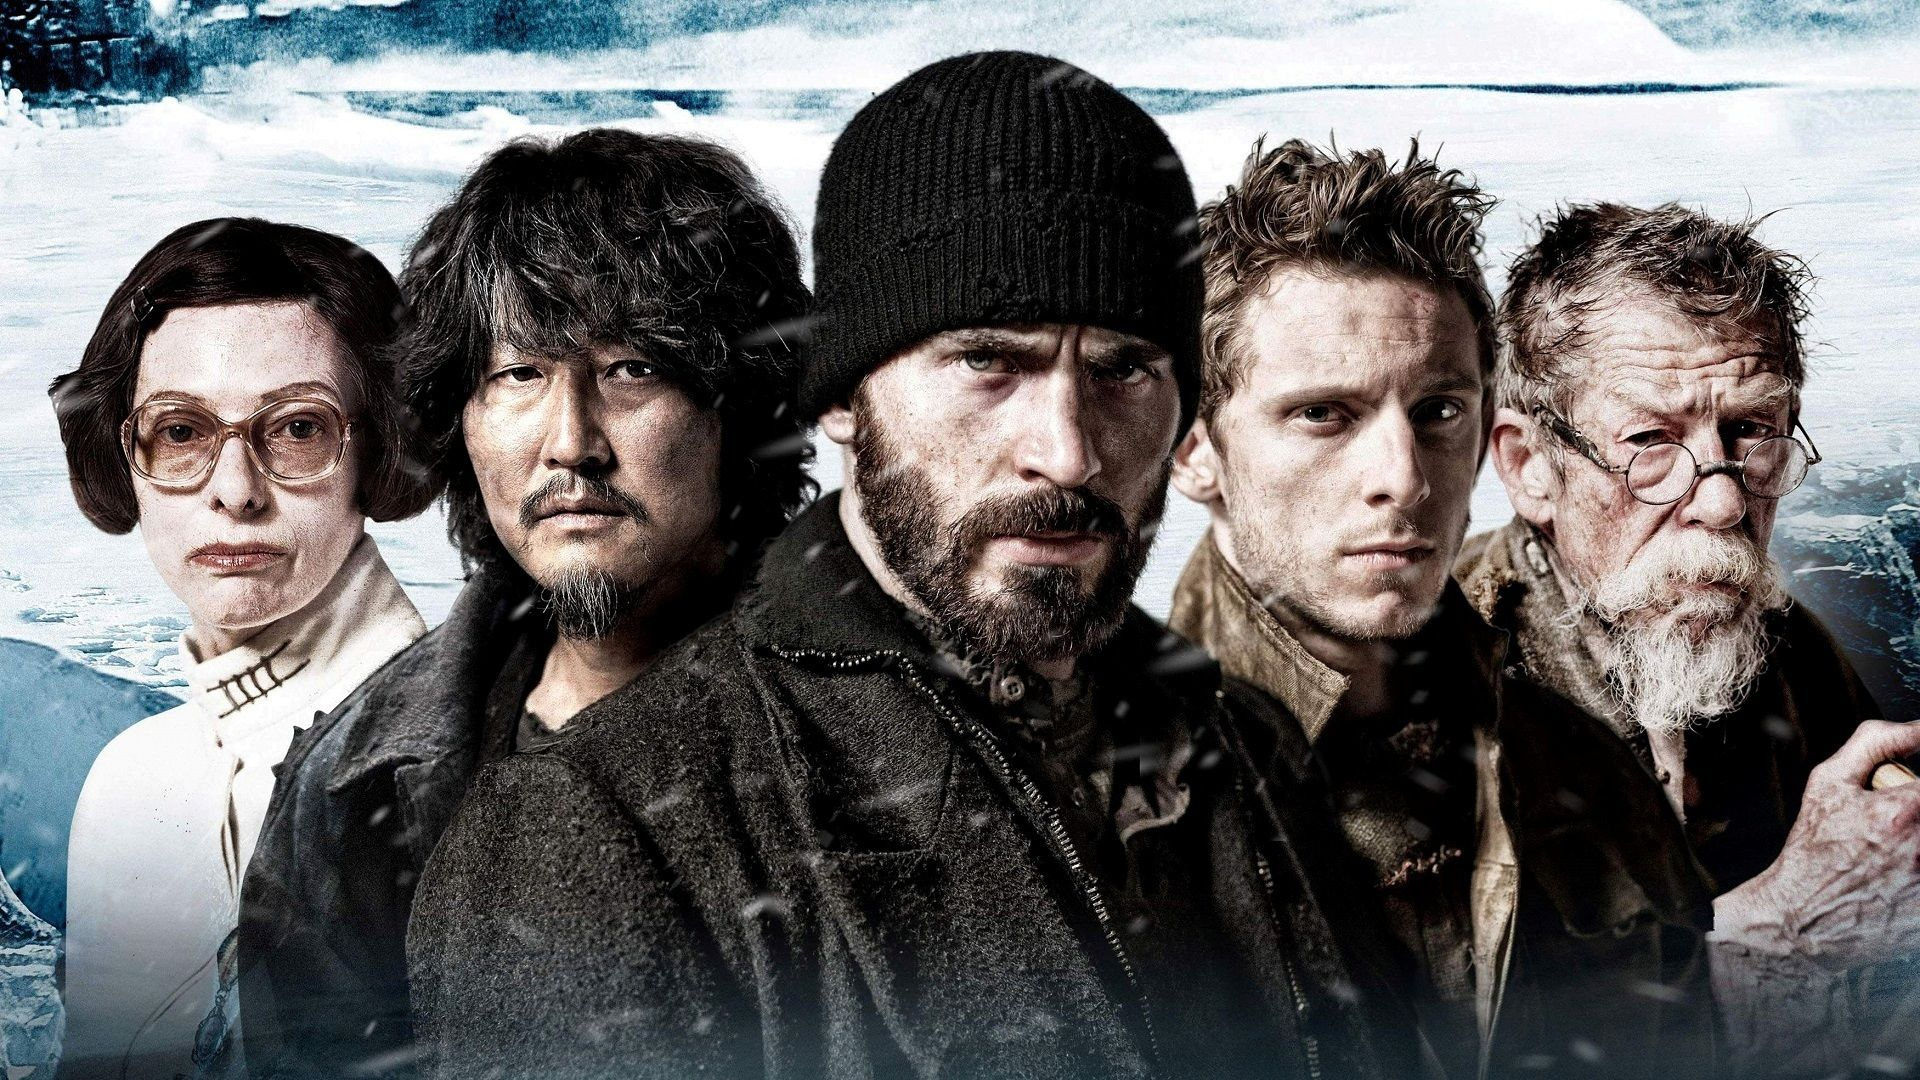 Snowpiercer Posters Wallpapers Trailers Prime Movies Movie Collection Seattle International Film Festival Prime Movies